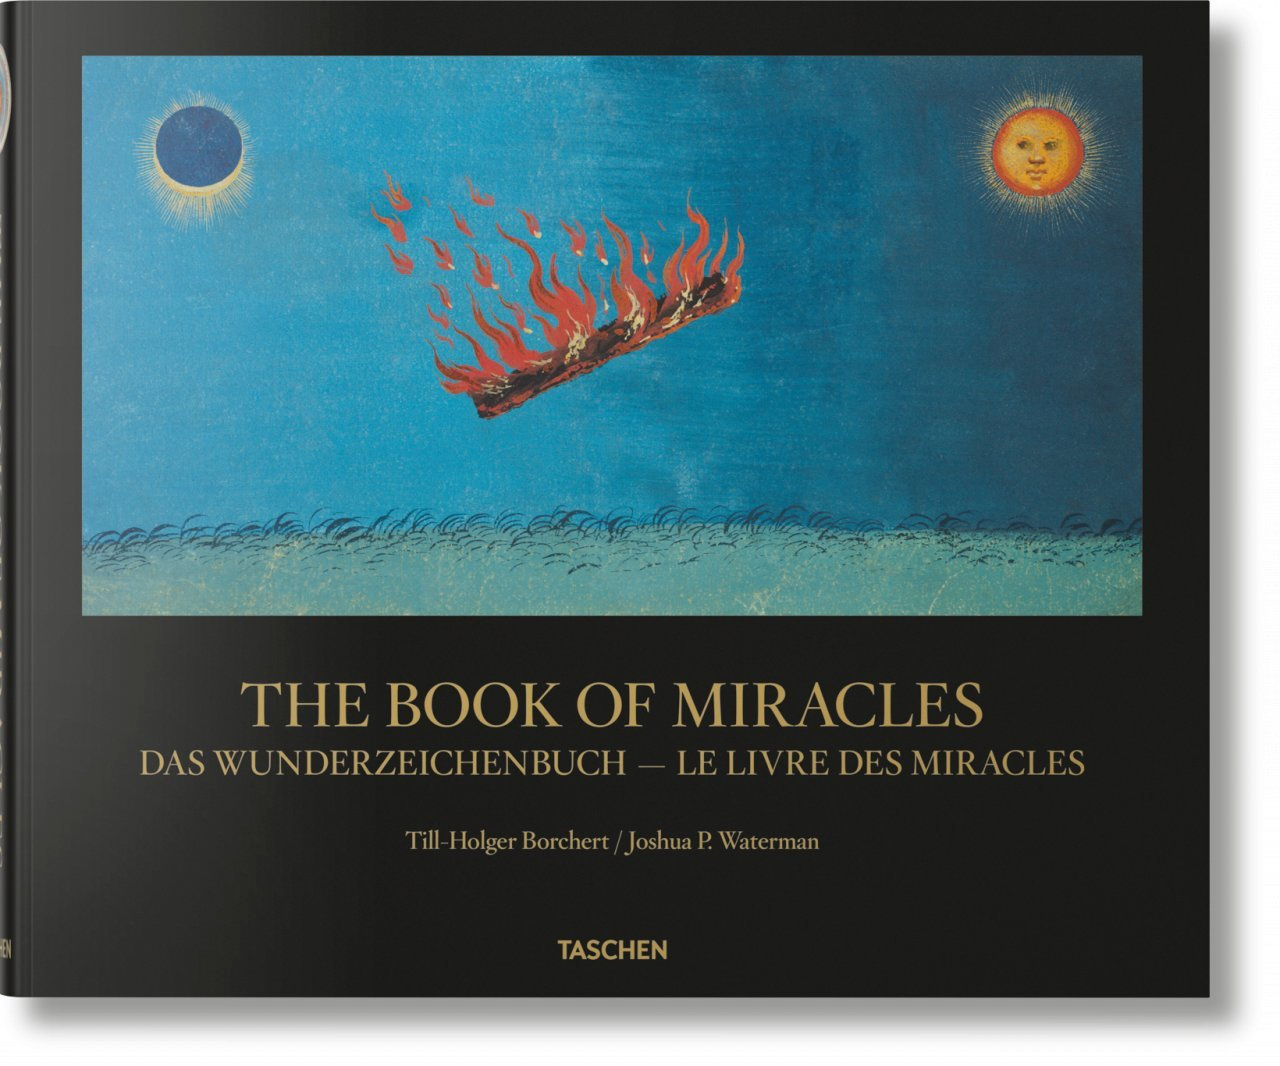 VA-BOOK OF MIRACLES, 2ND ED.-TRILINGUE